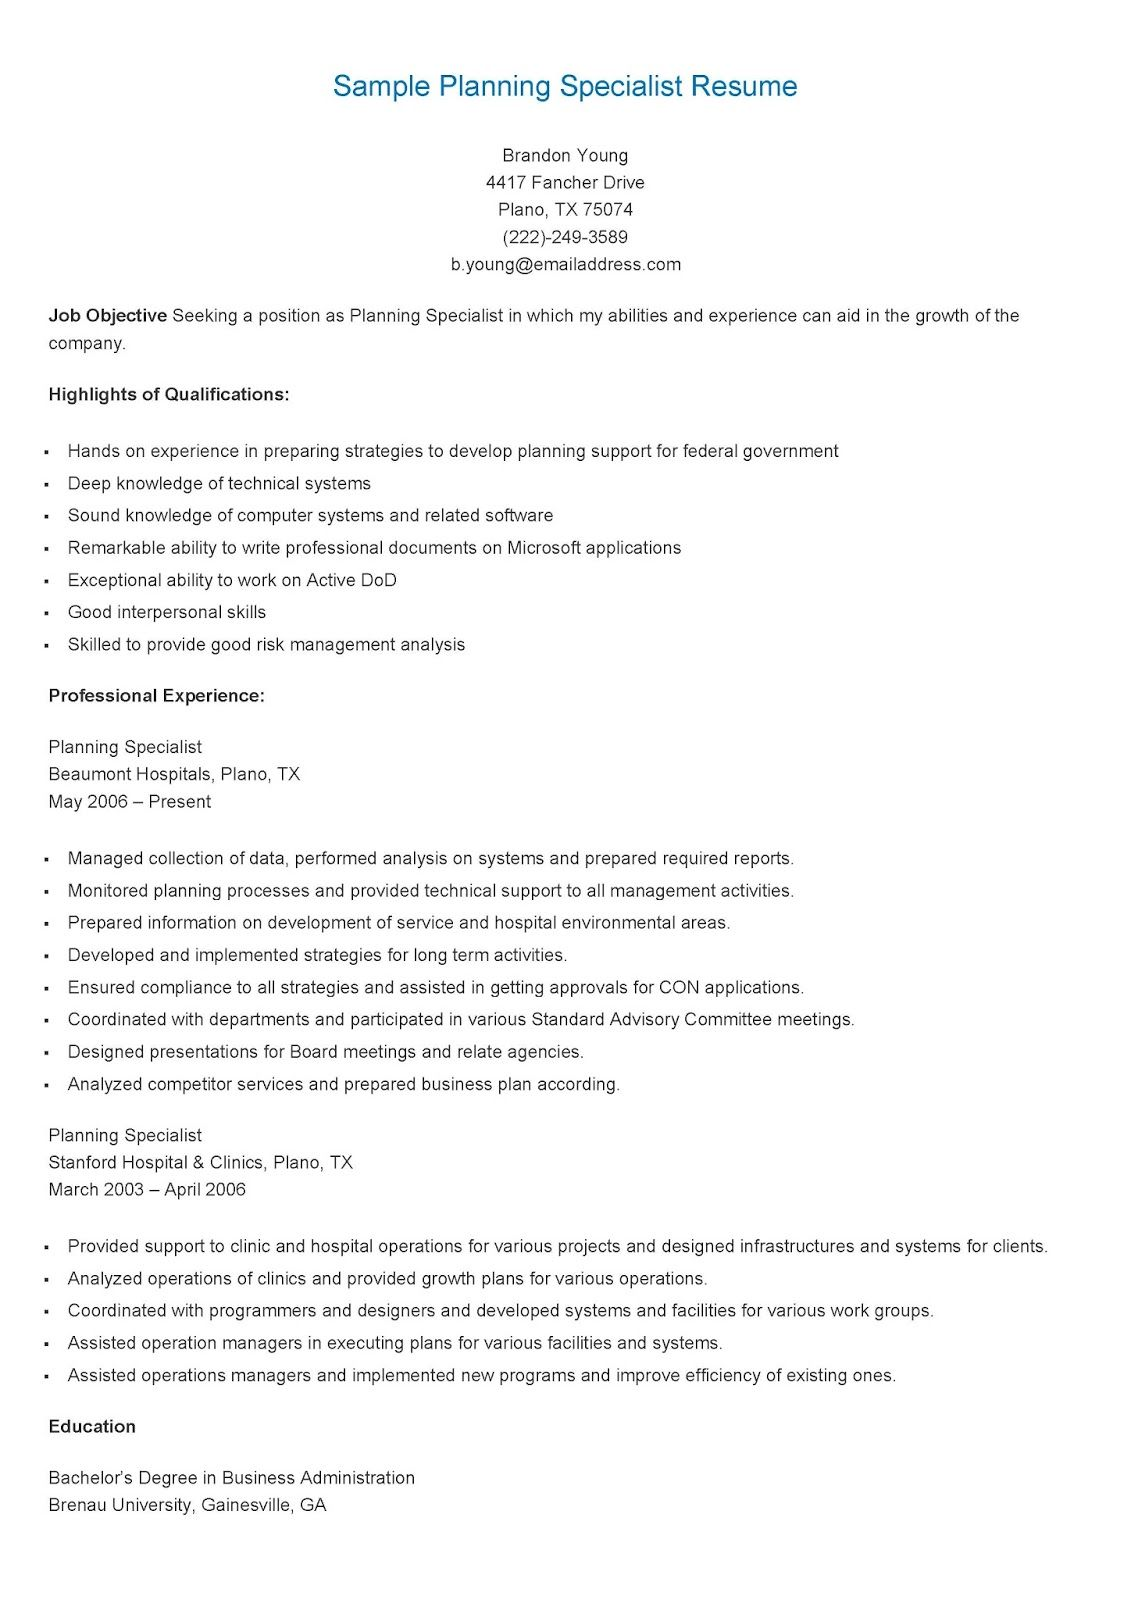 Sample Planning Specialist Resume Resume Specialist How To Plan